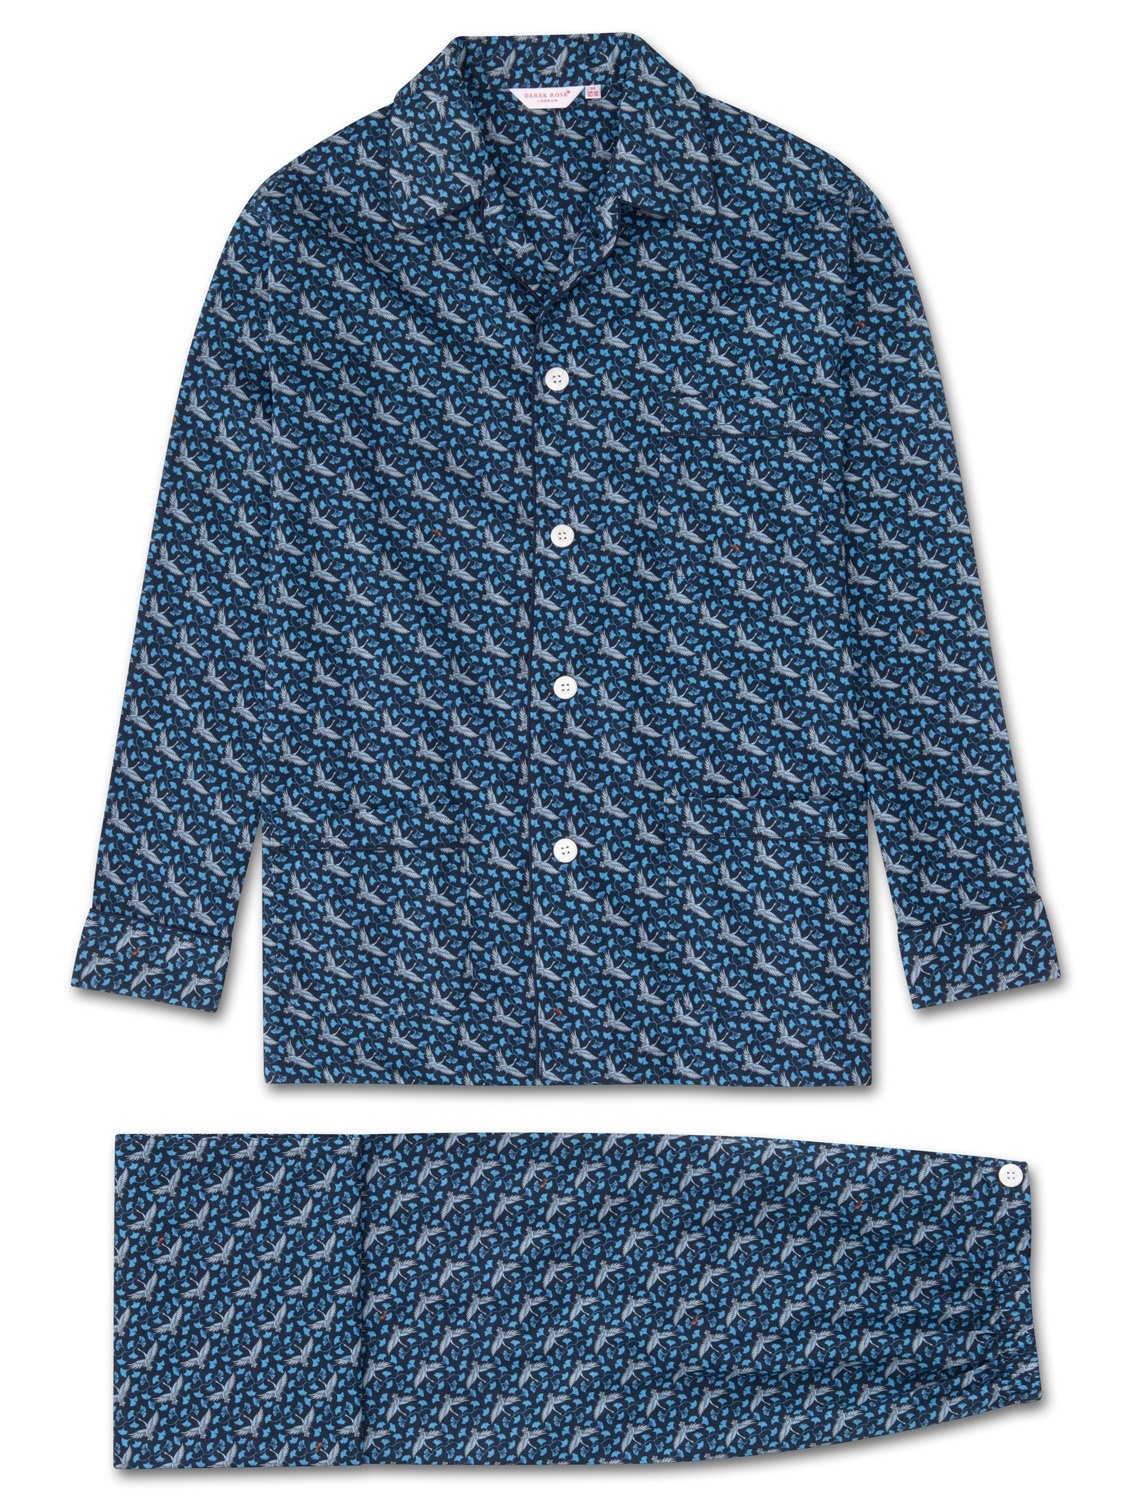 Men's Classic Fit Piped Pyjamas Ledbury 15 Cotton Batiste Navy